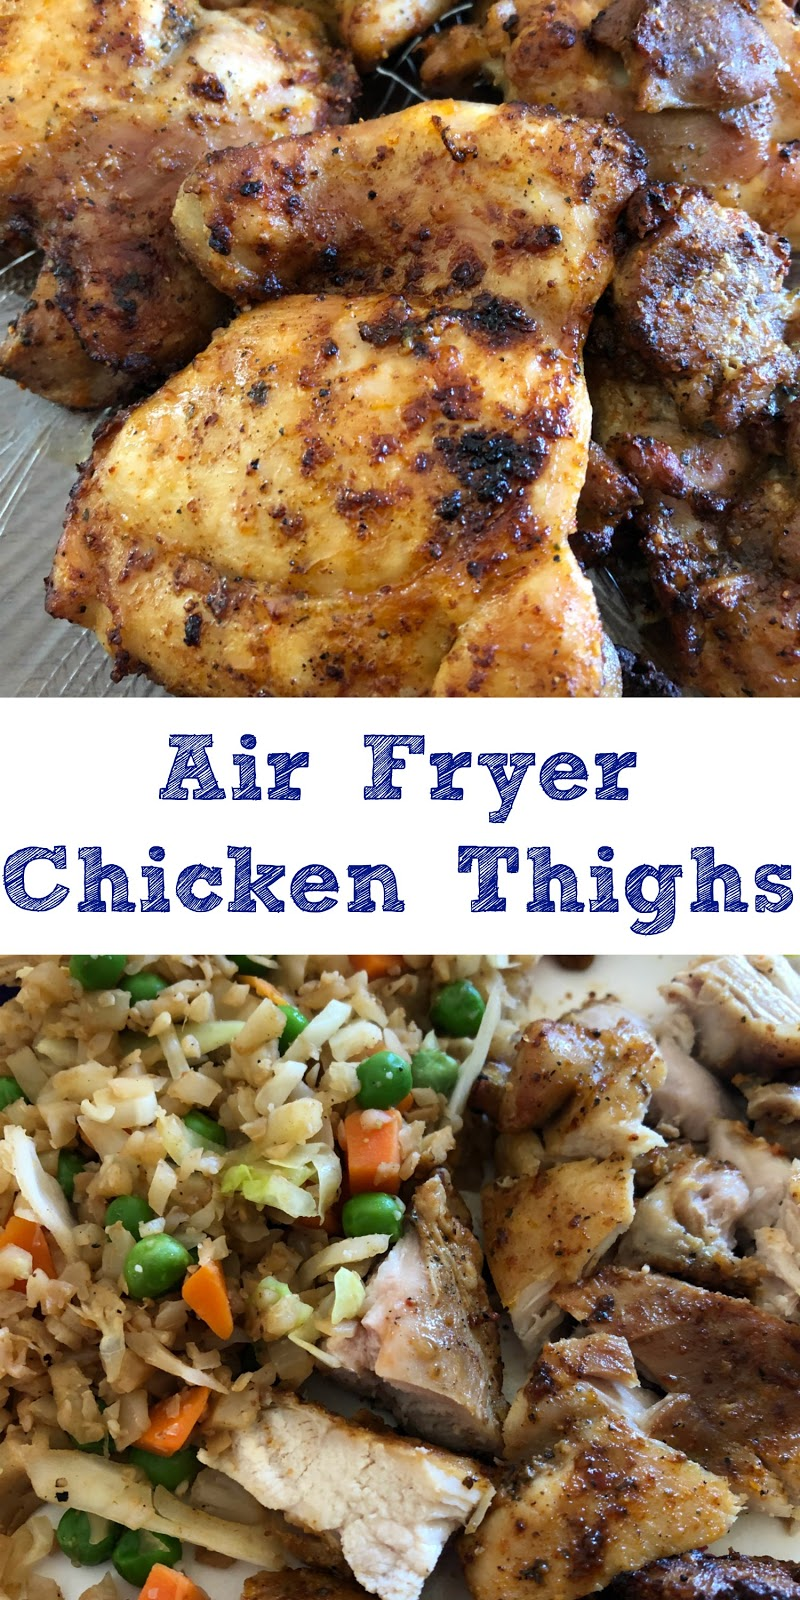 How to cook boneless chicken thighs in the air fryer